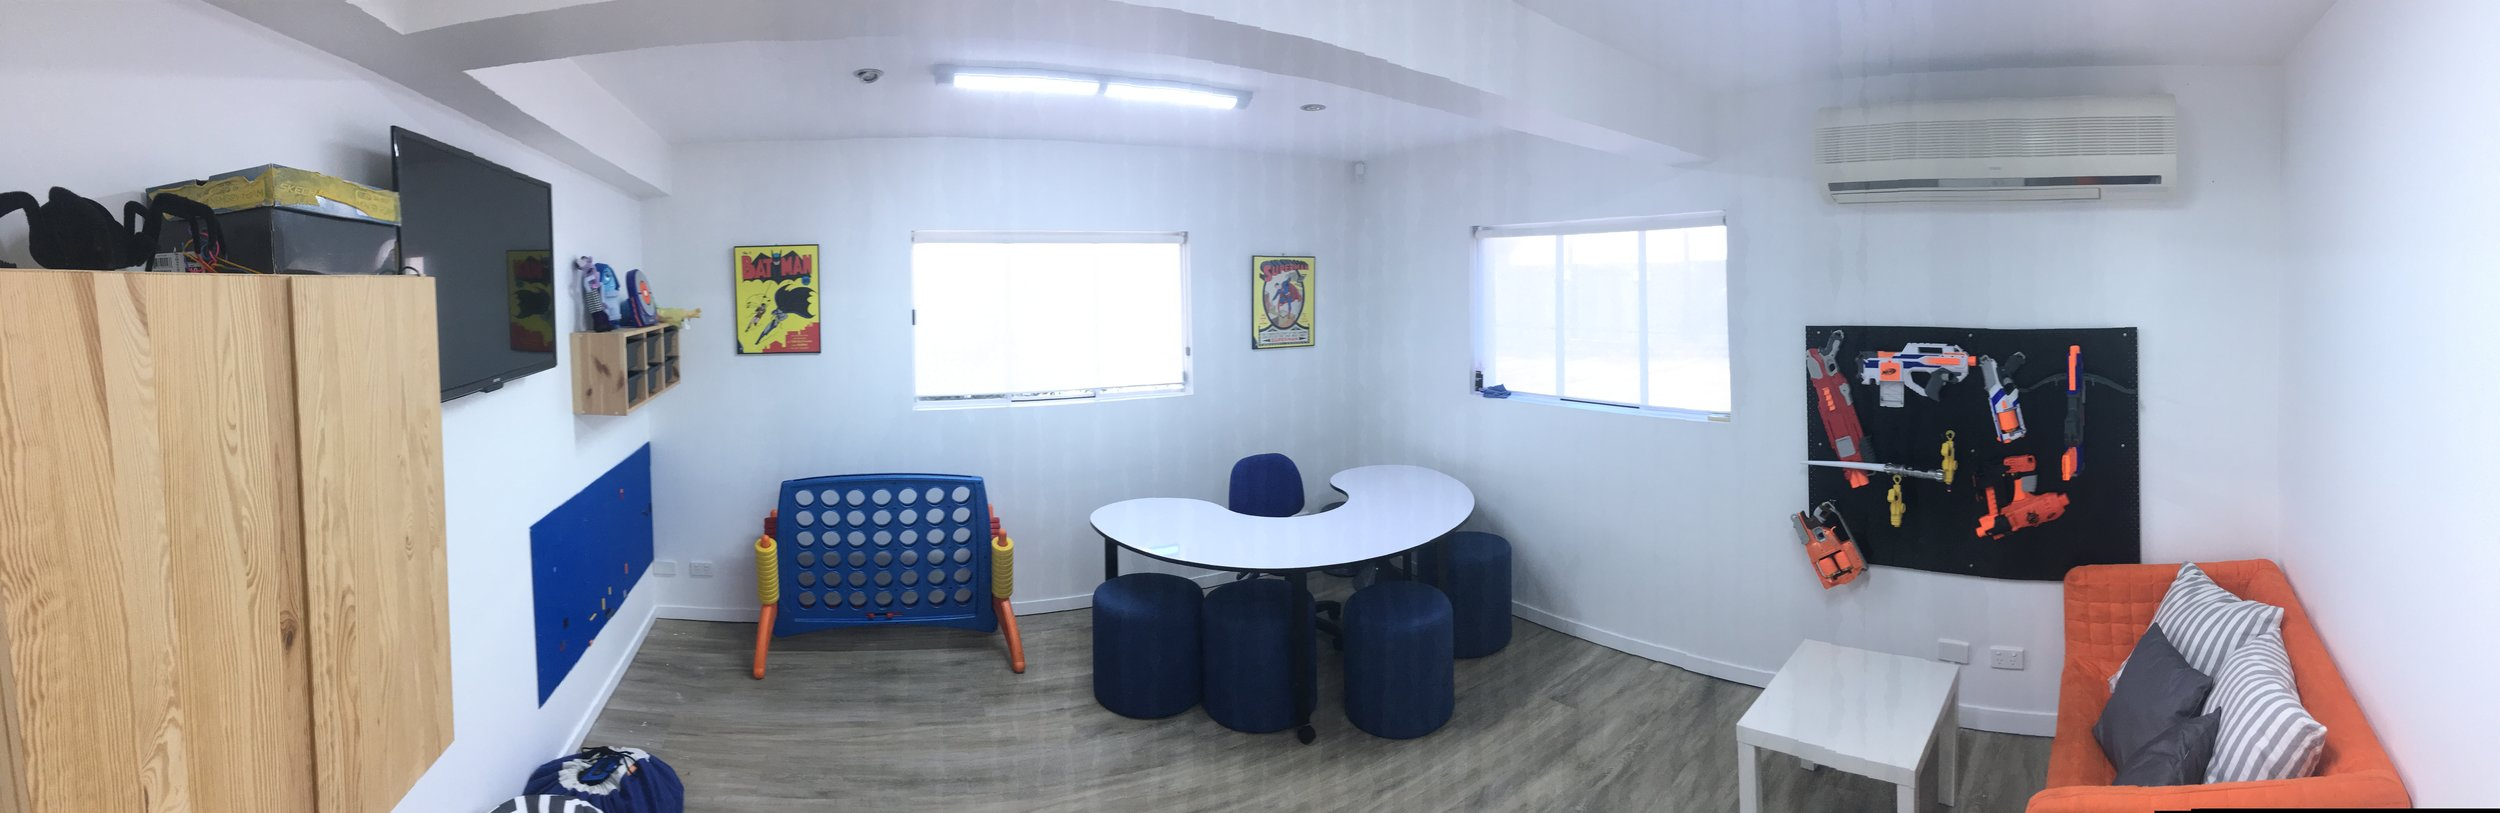 Noosaville Therapy and Telehealth Room